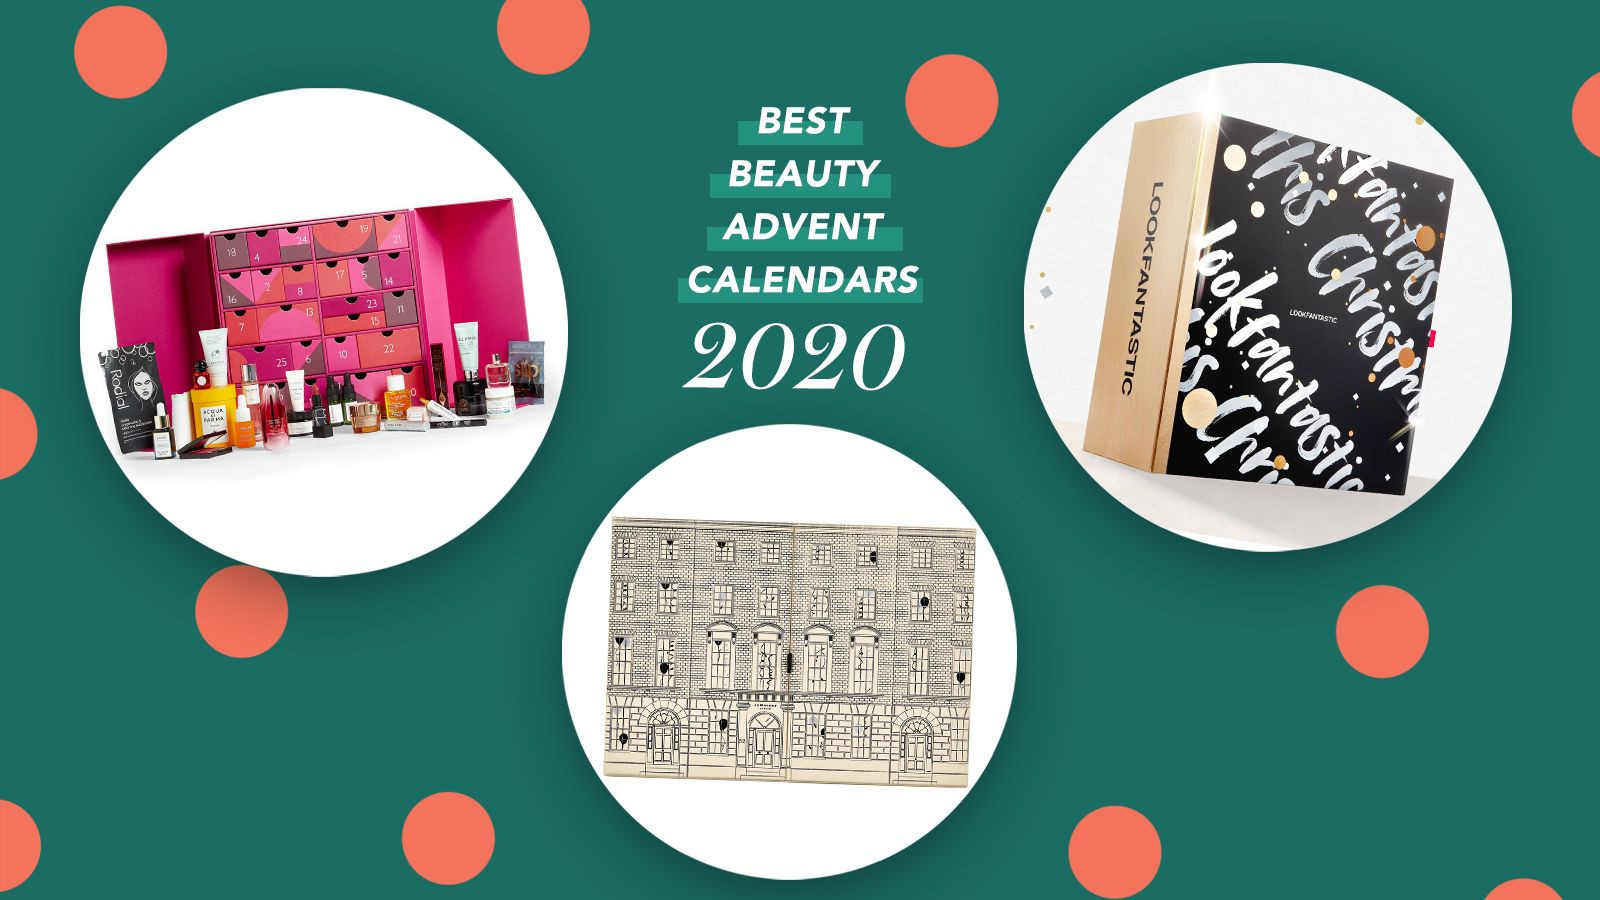 The best beauty advent calendars 2020: from Jo Malone, Liberty, Boots, John Lewis and more!